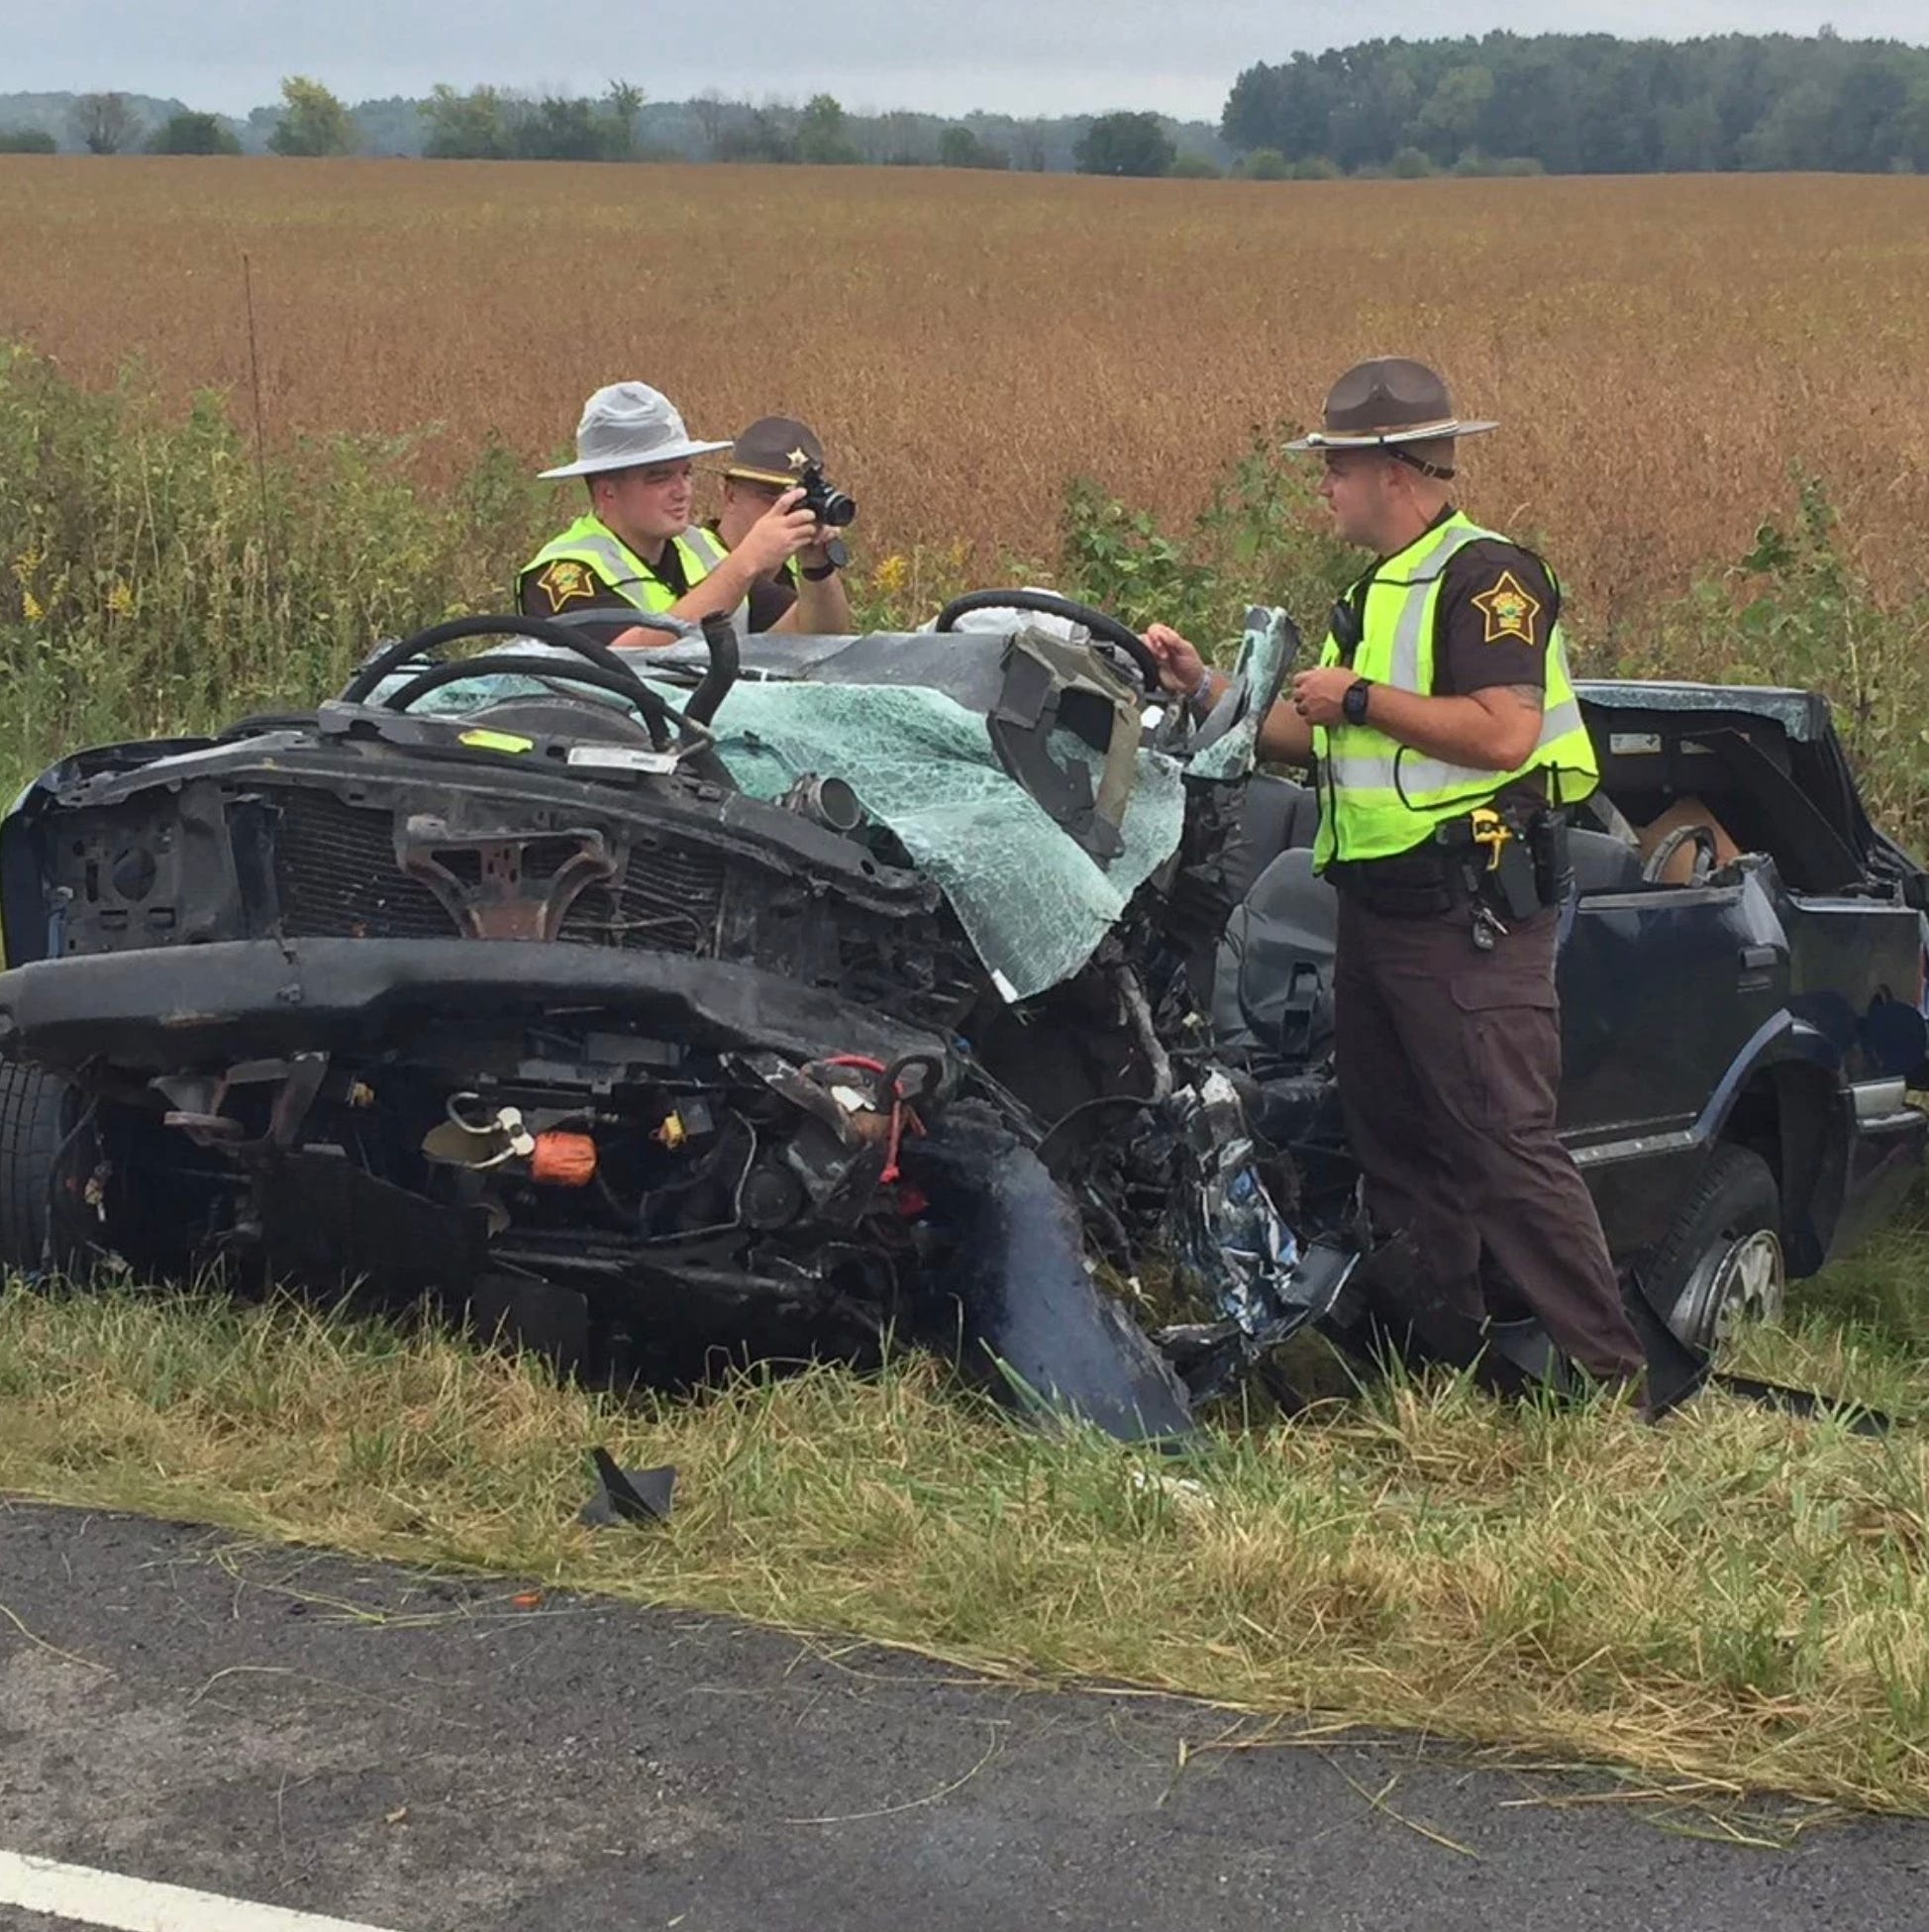 Sheriff's office: Driver in deadly crash may have intended to travel wrong way on U.S. 40